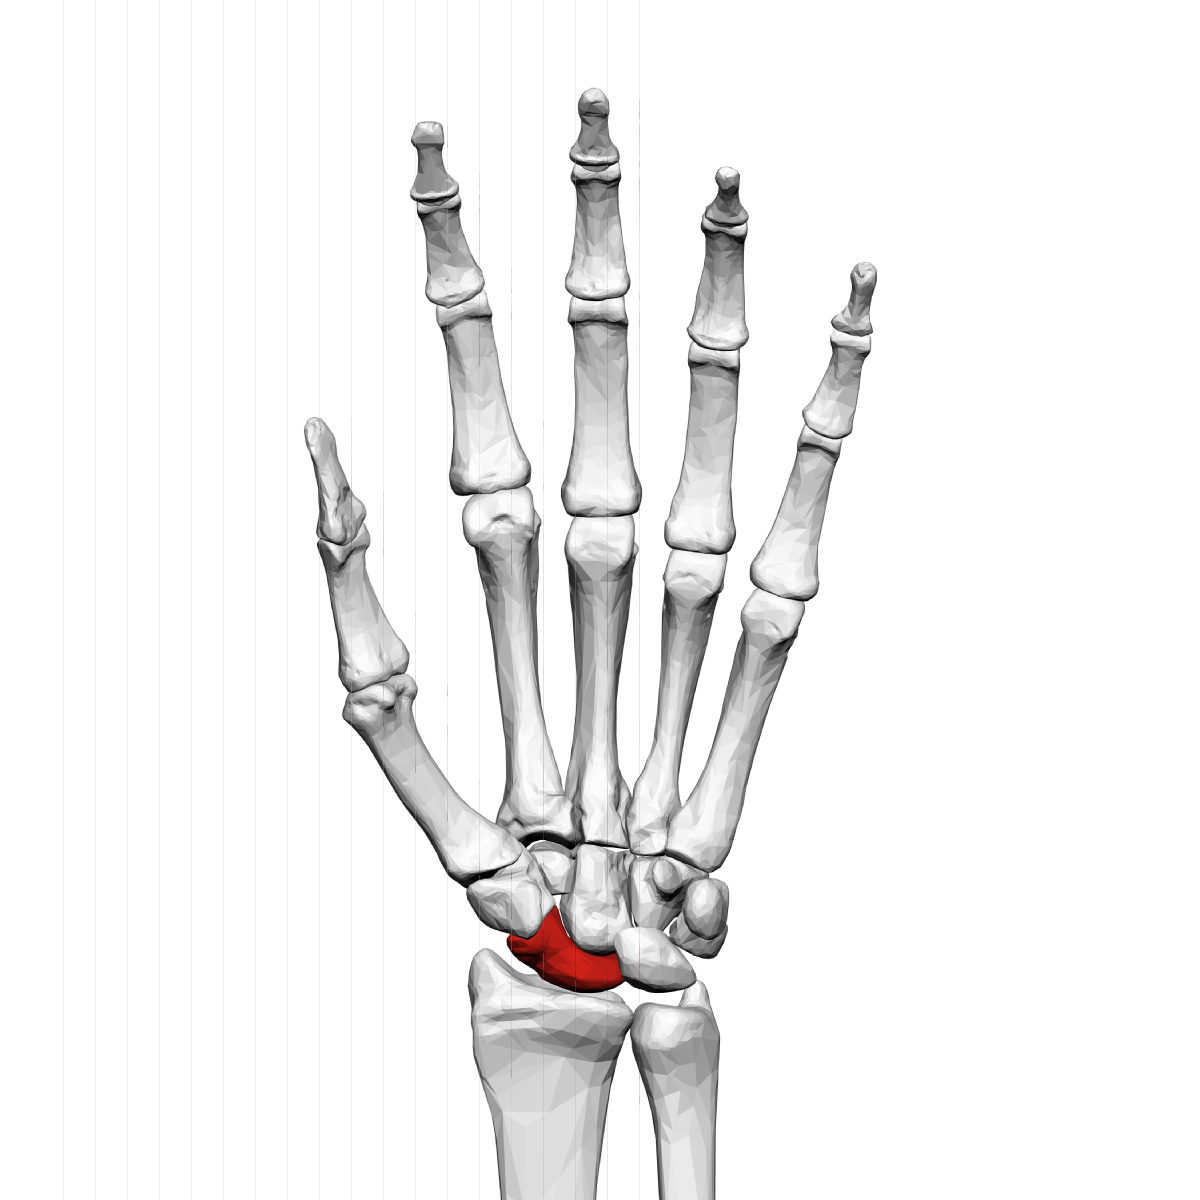 Scaphoid bone - Wikipedia